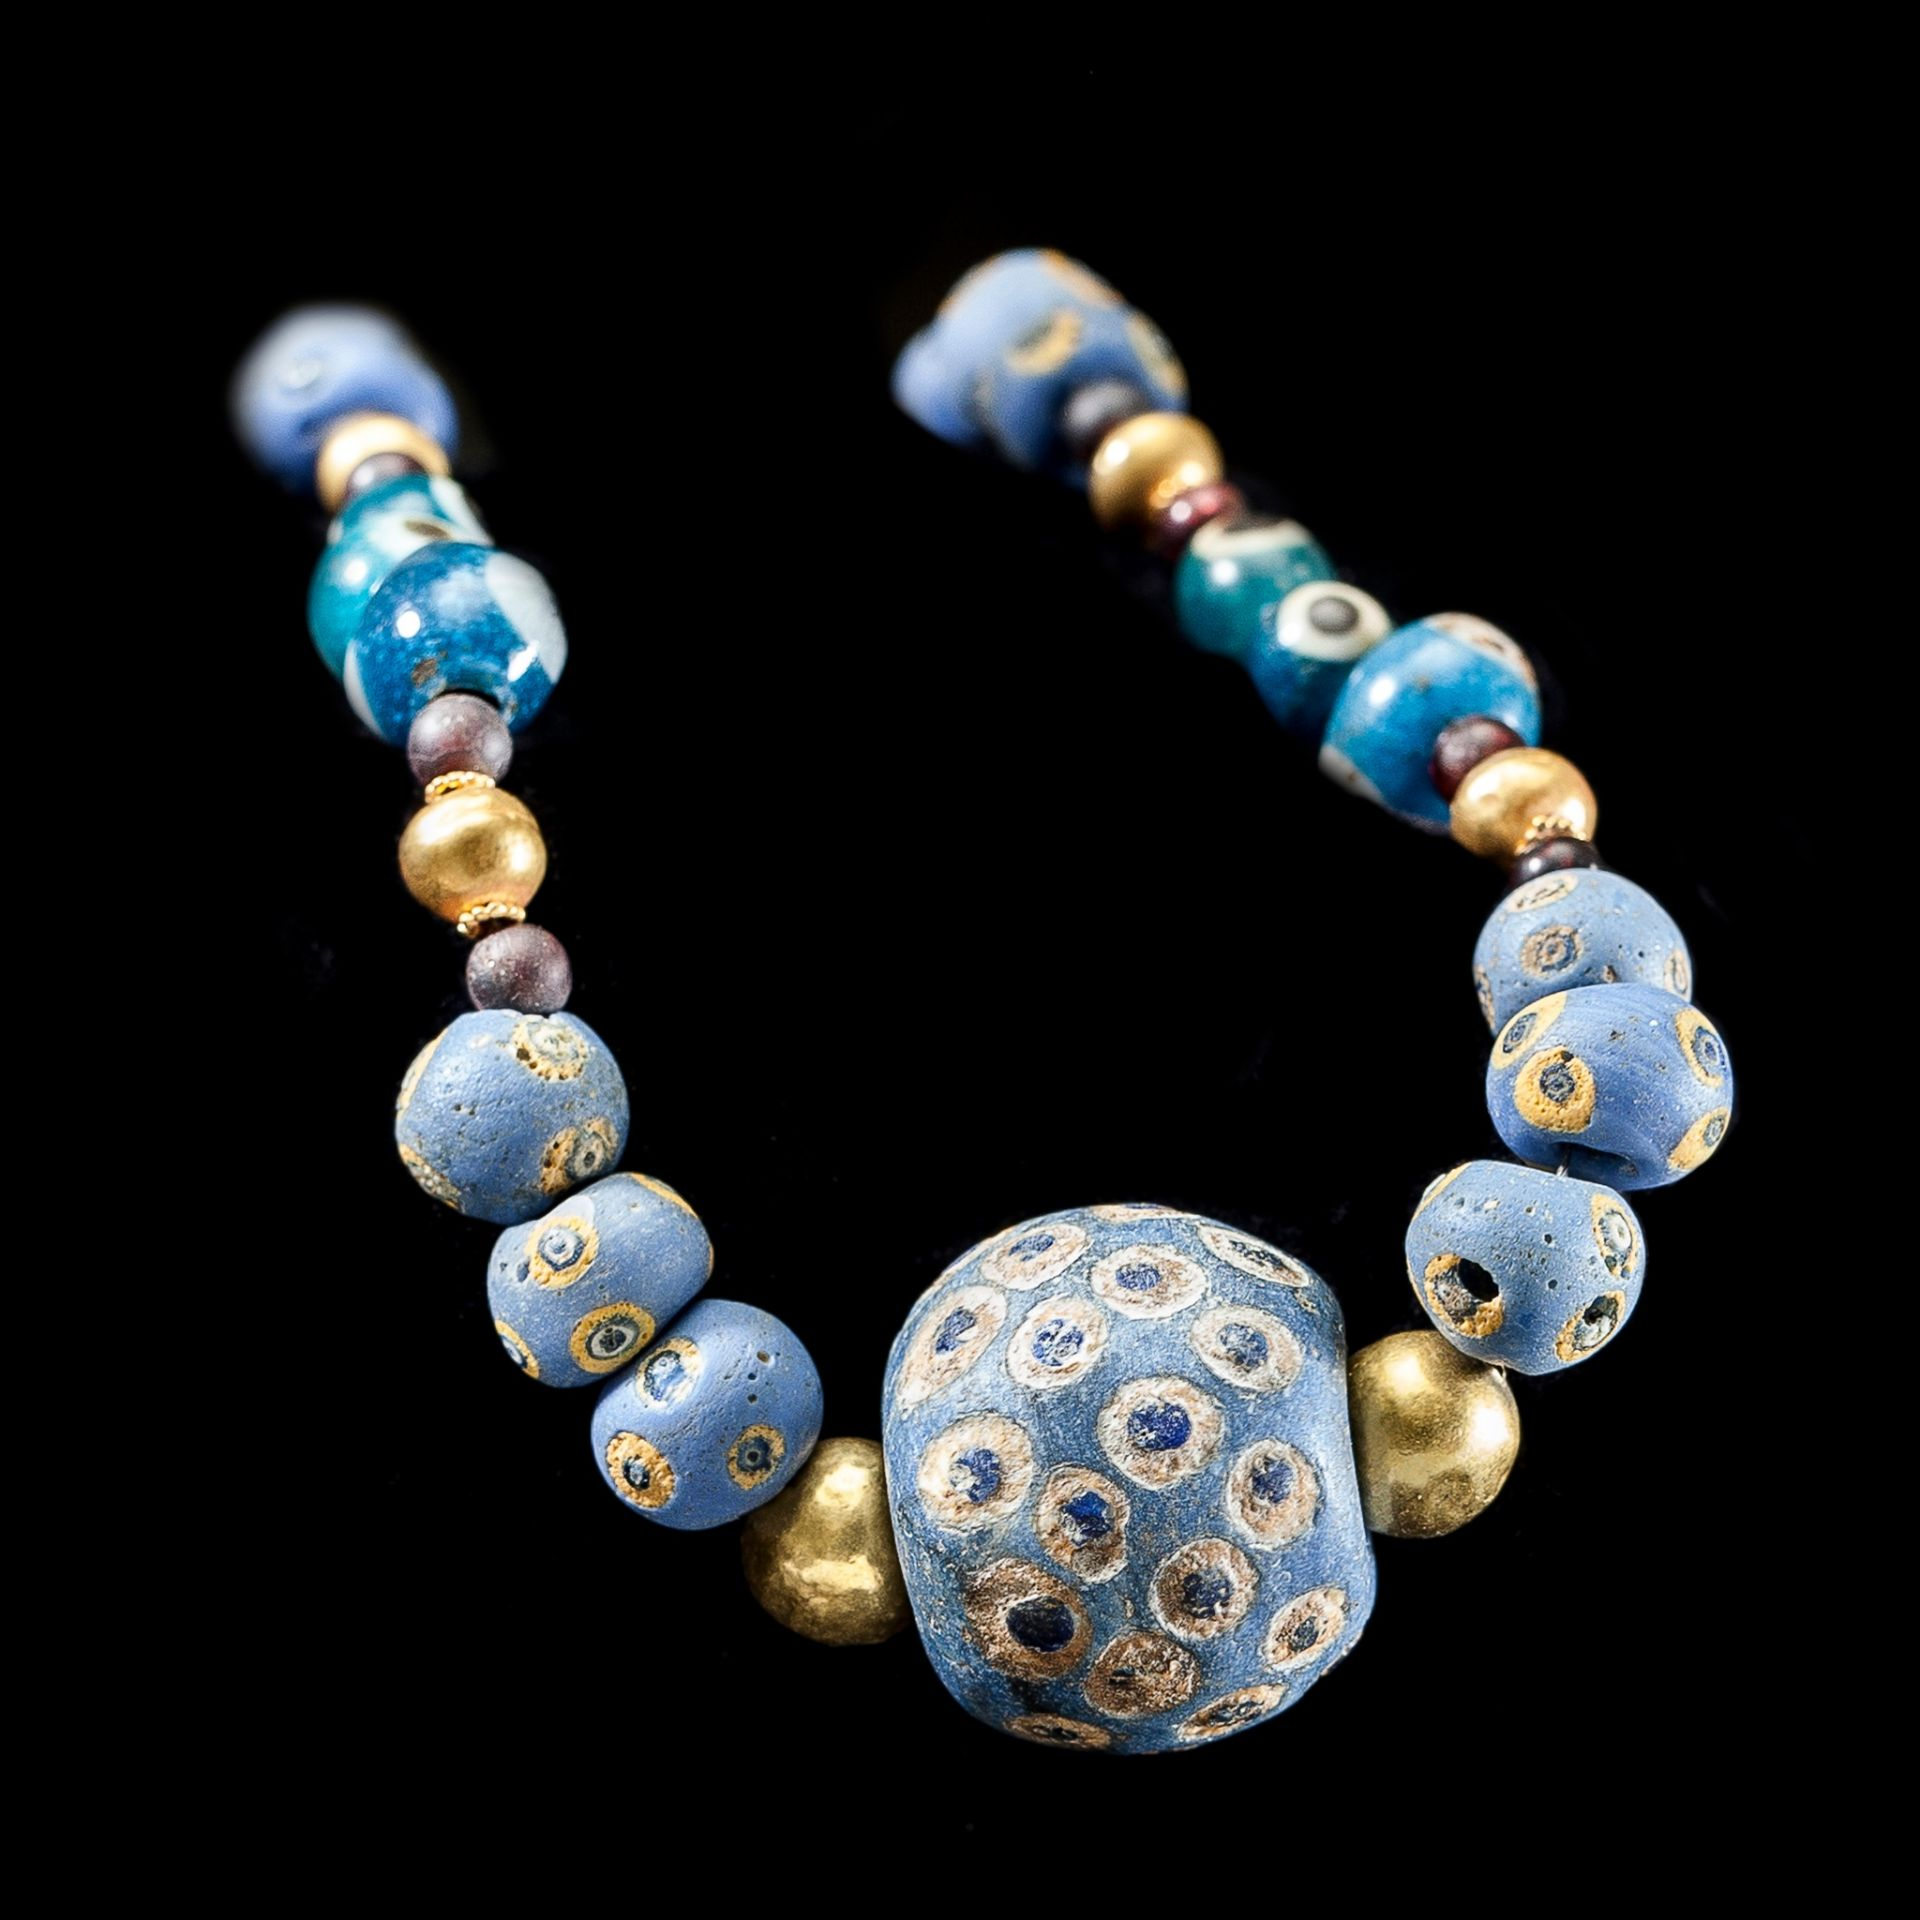 PHOENICIAN EYE GLASS AND GOLD BEAD NECKLACE NEAR EAST, C. 7TH CENTURY B.C. - Image 2 of 2